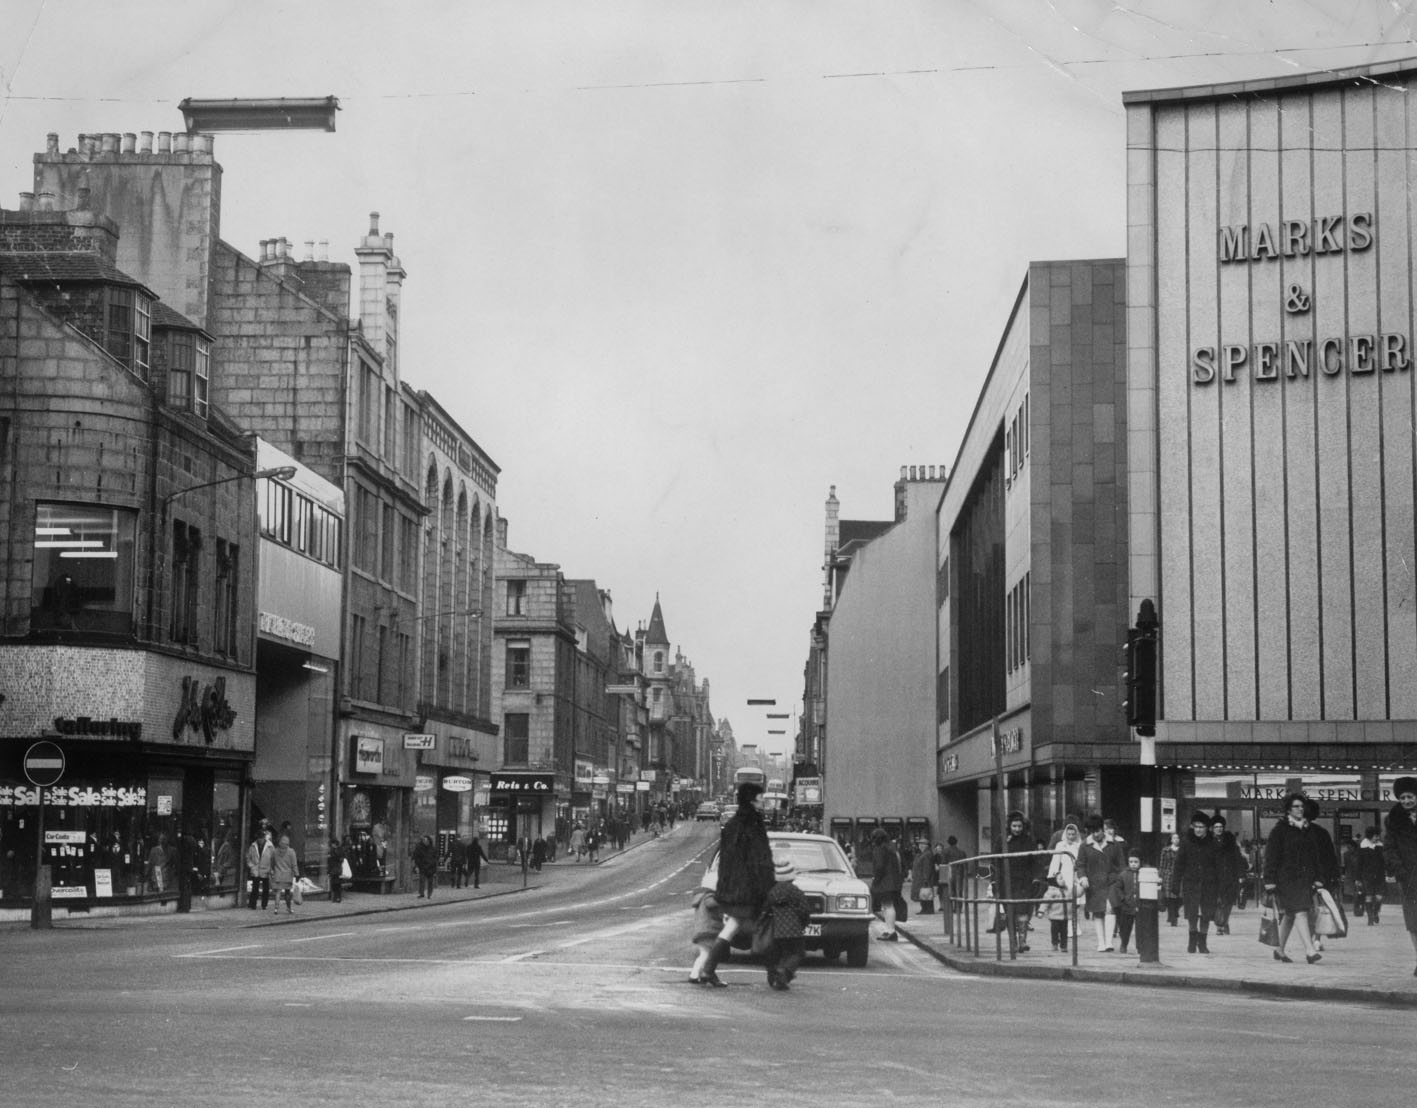 The Marks and Spencer store picture in 1973 when St Nicholas Road was still open